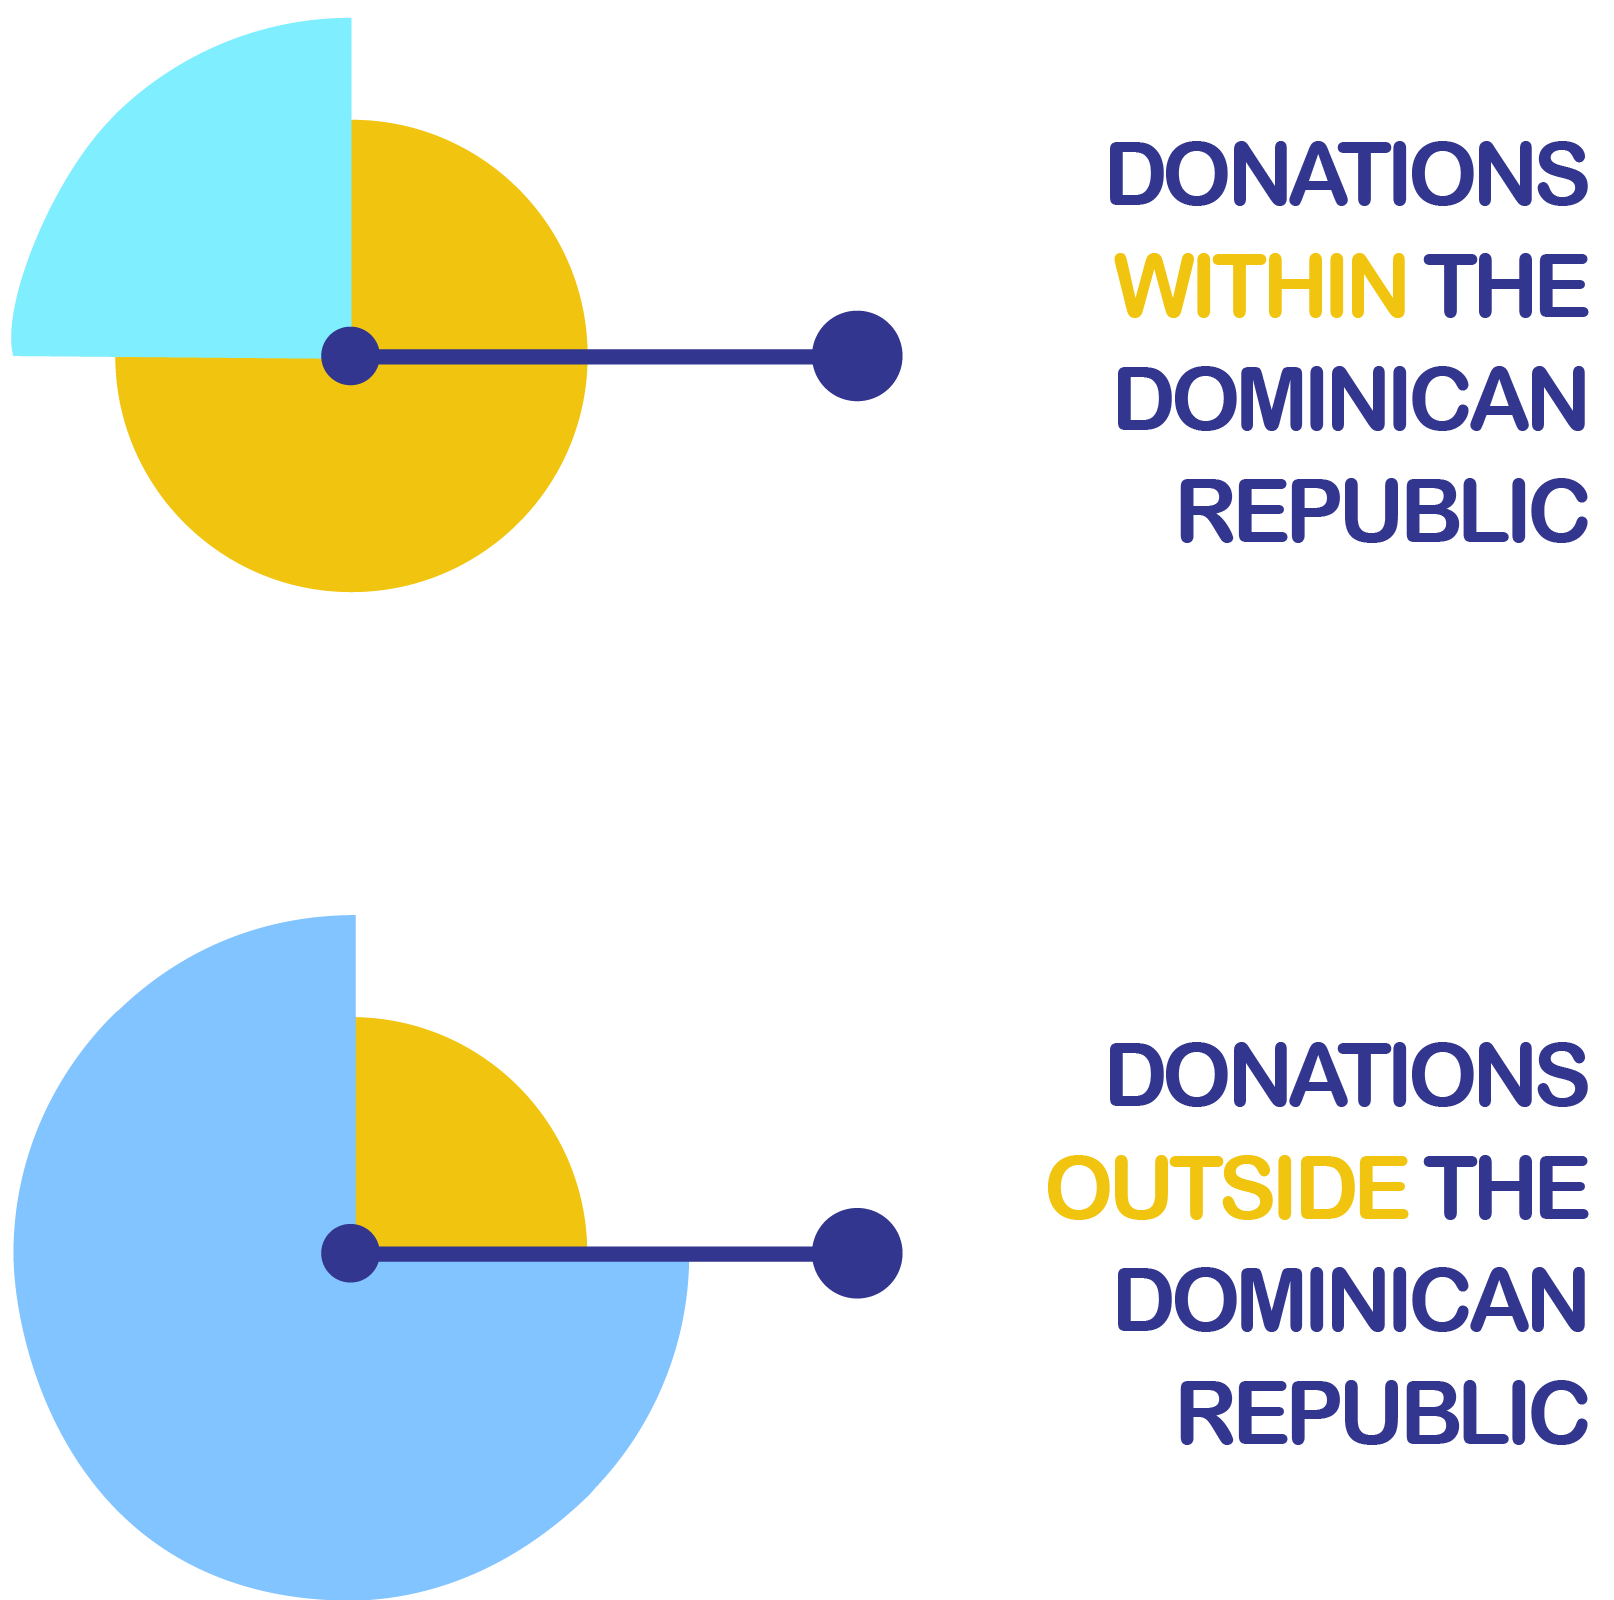 INFOGRAPHIC-07.png